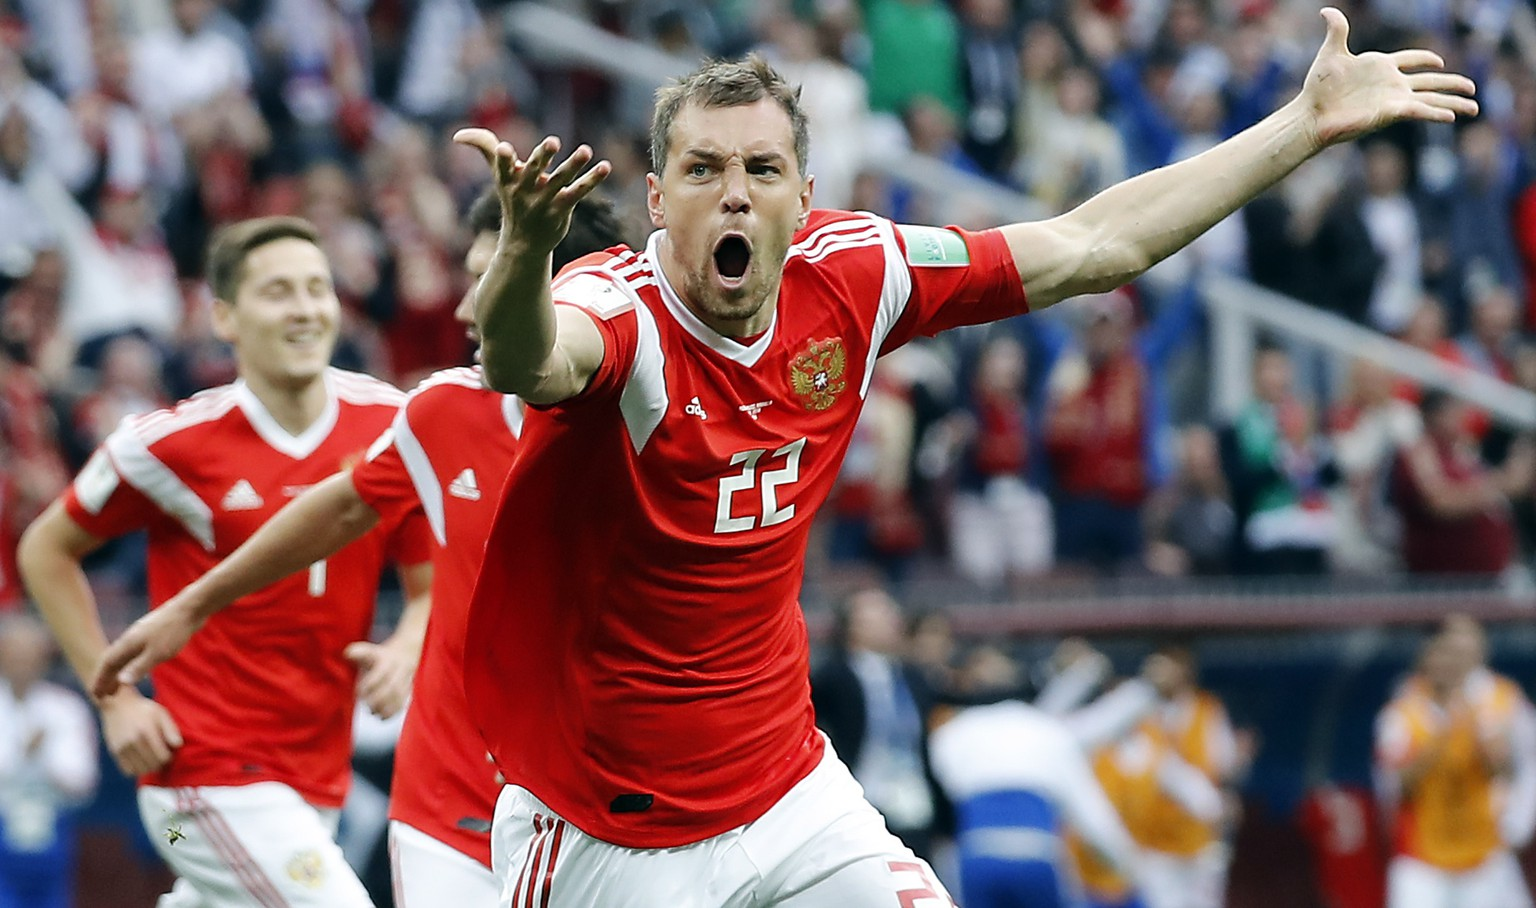 epa06807706 Artem Dzyuba of Russia celebrates after scoring the 3-0 goal during the FIFA World Cup 2018 group A preliminary round soccer match between Russia and Saudi Arabia in Moscow, Russia, 14 June 2018.